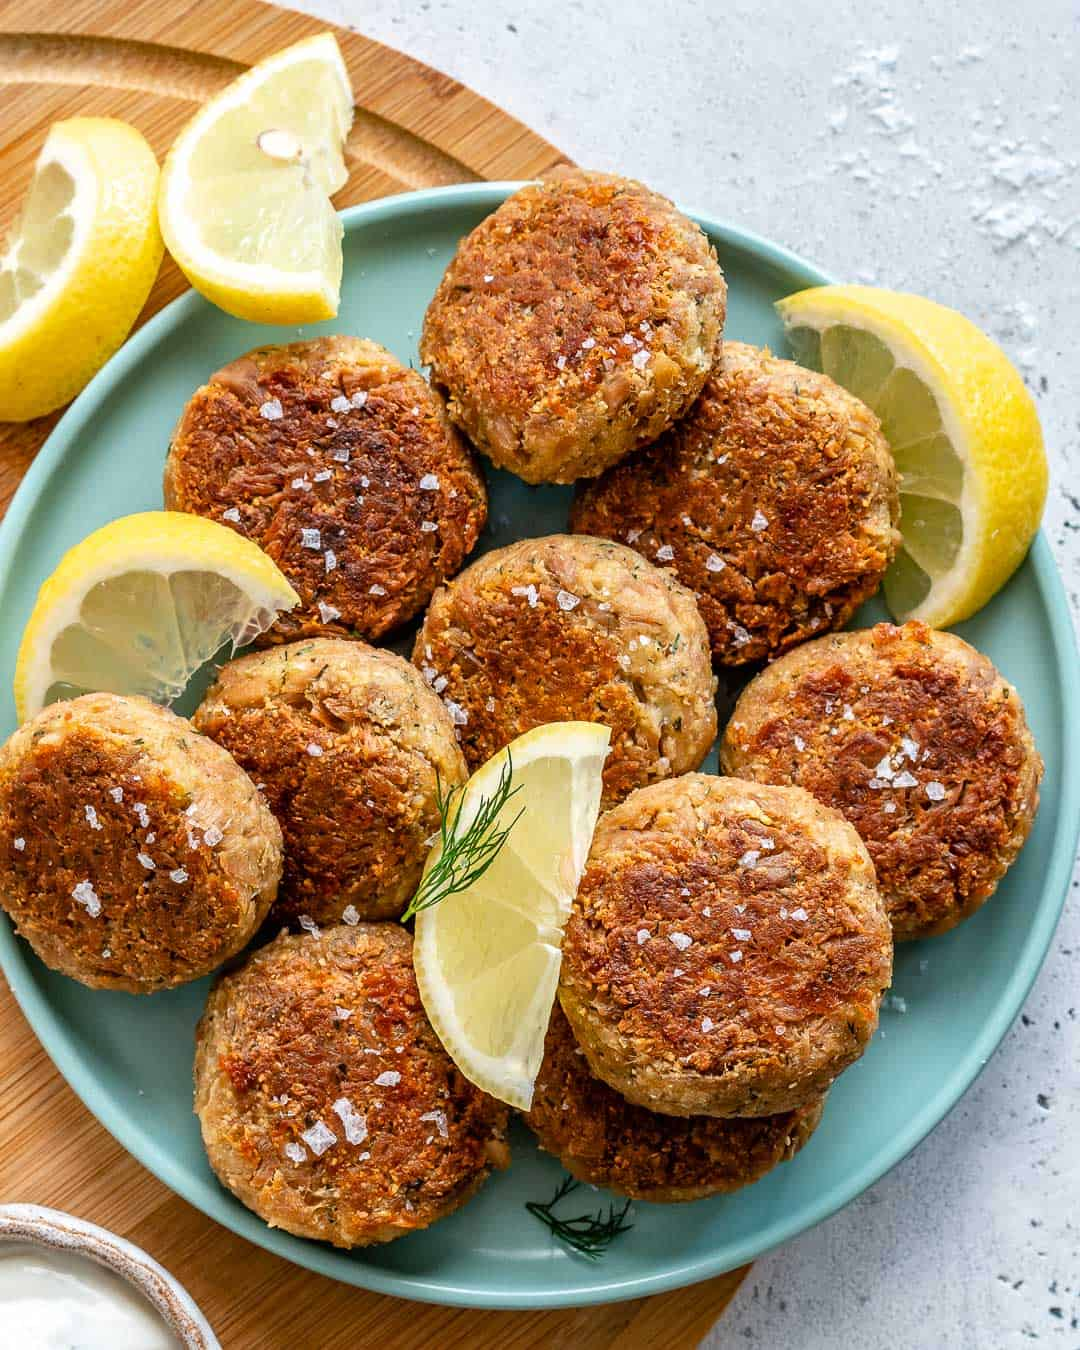 tuna cakes on a blue plate with lemon wedges as garnishes